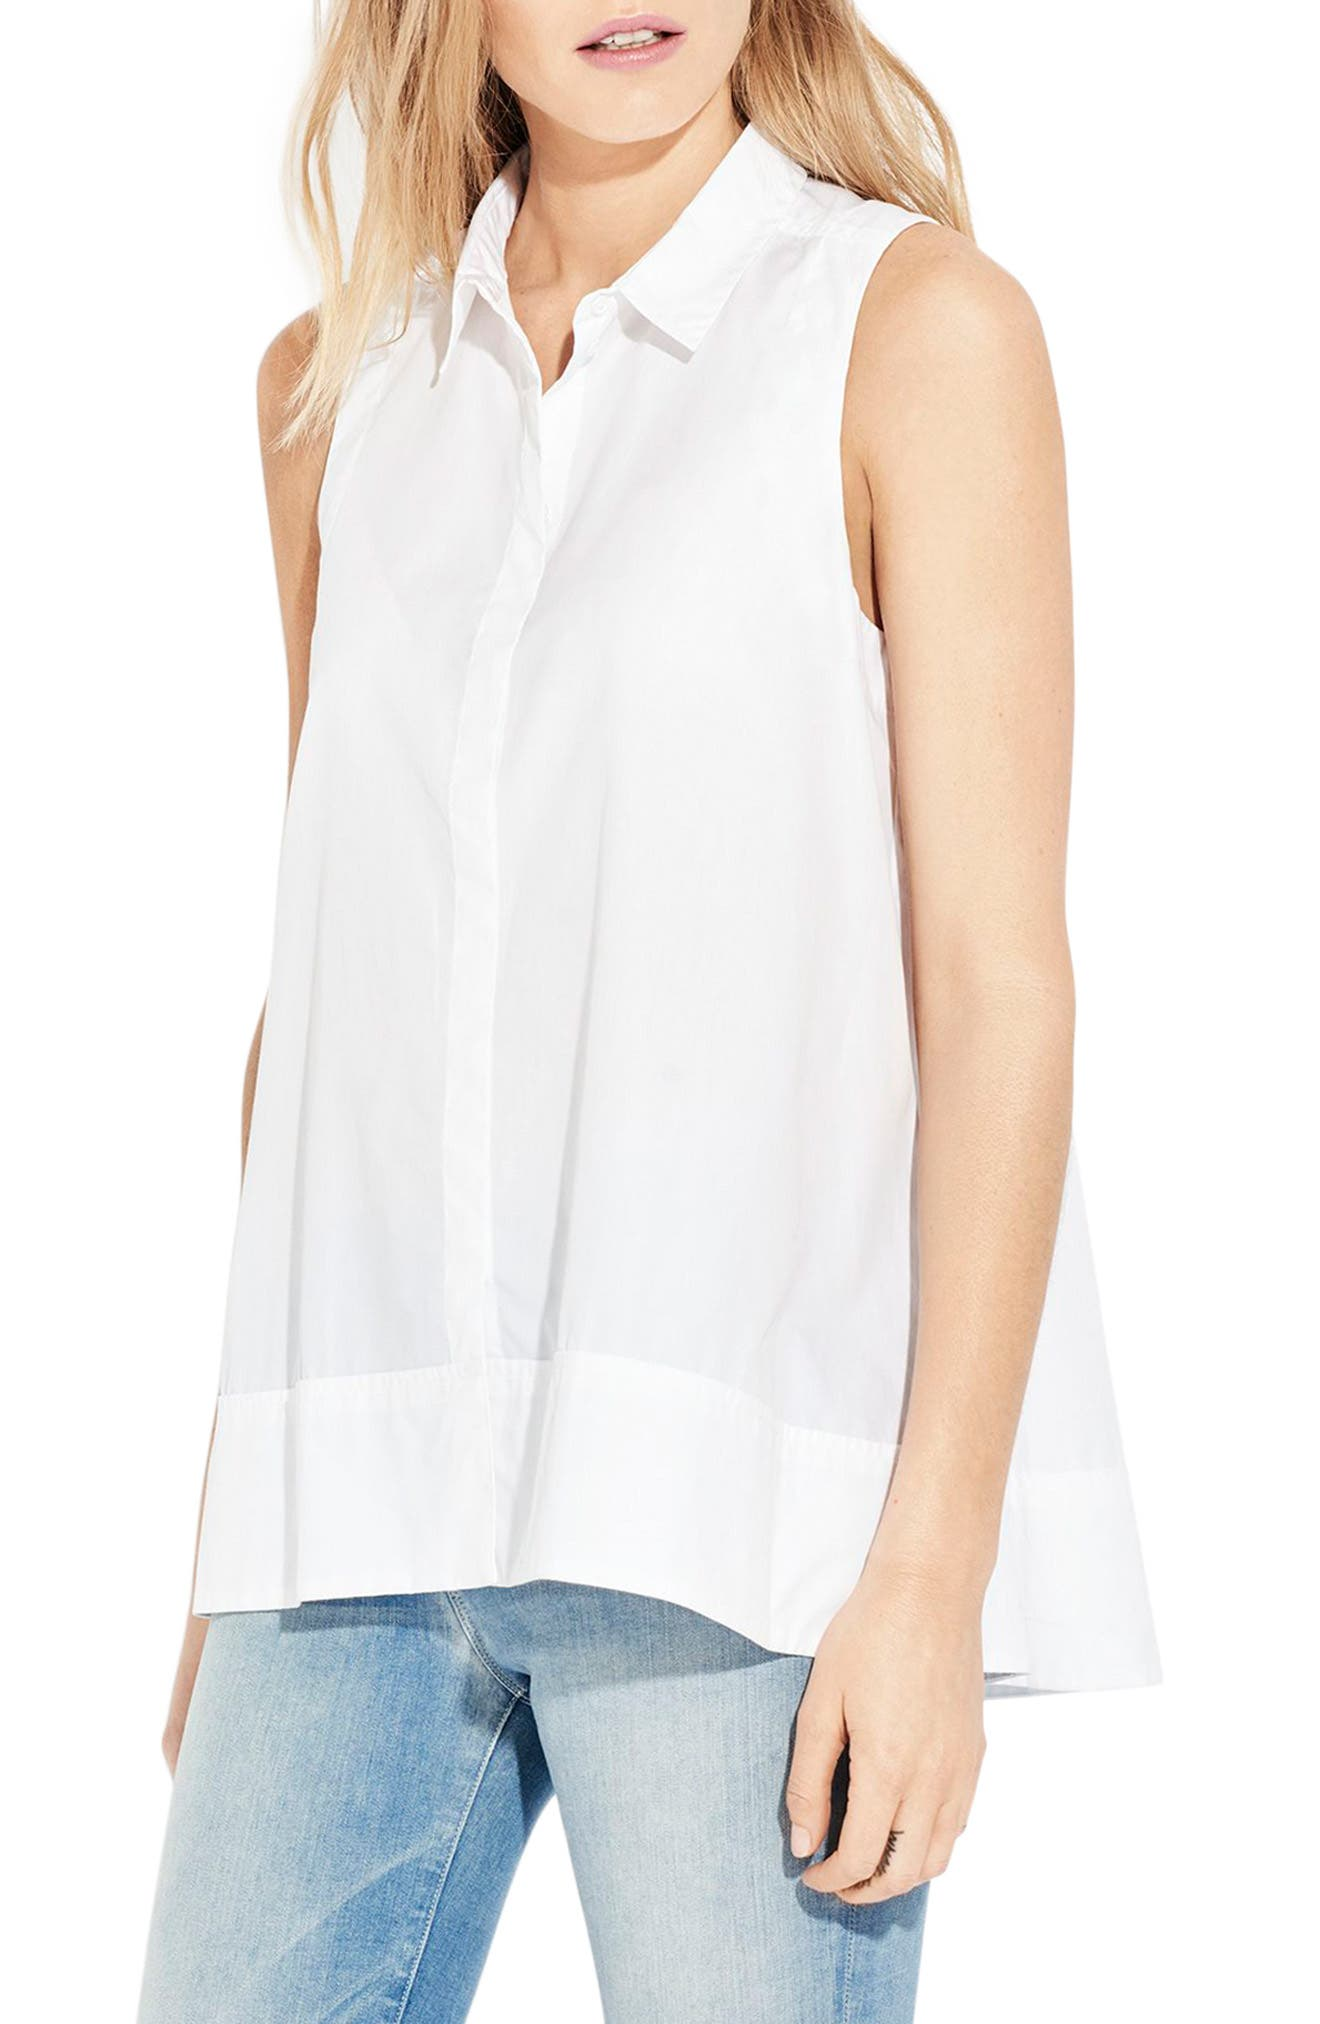 AYR The Swing Sleeveless Cotton Shirt